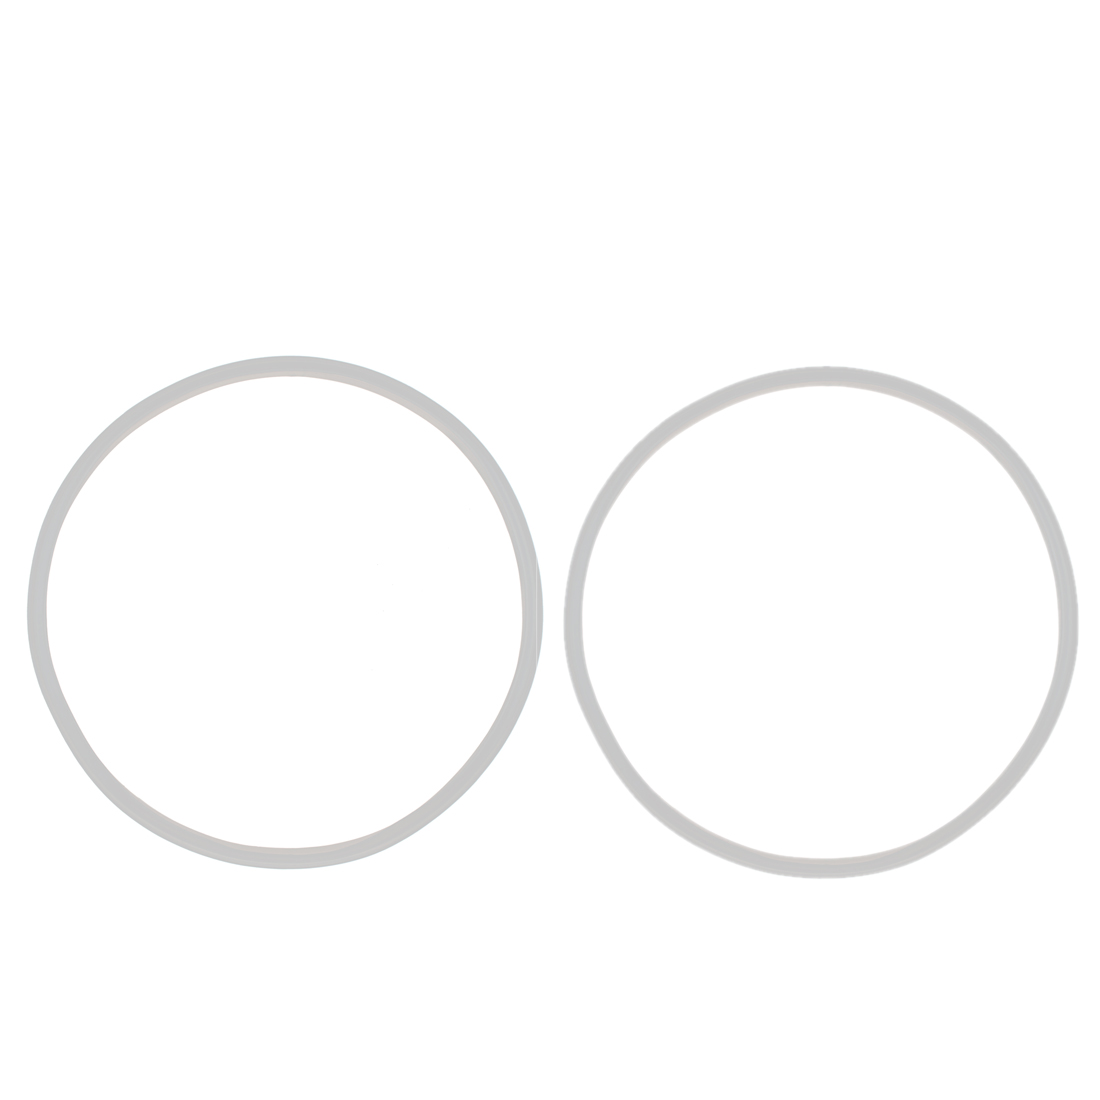 Home Rubber Kitchenware Pressure Cooker Part Gasket Sealing Ring Clear 28cm Inner Dia 2pcs